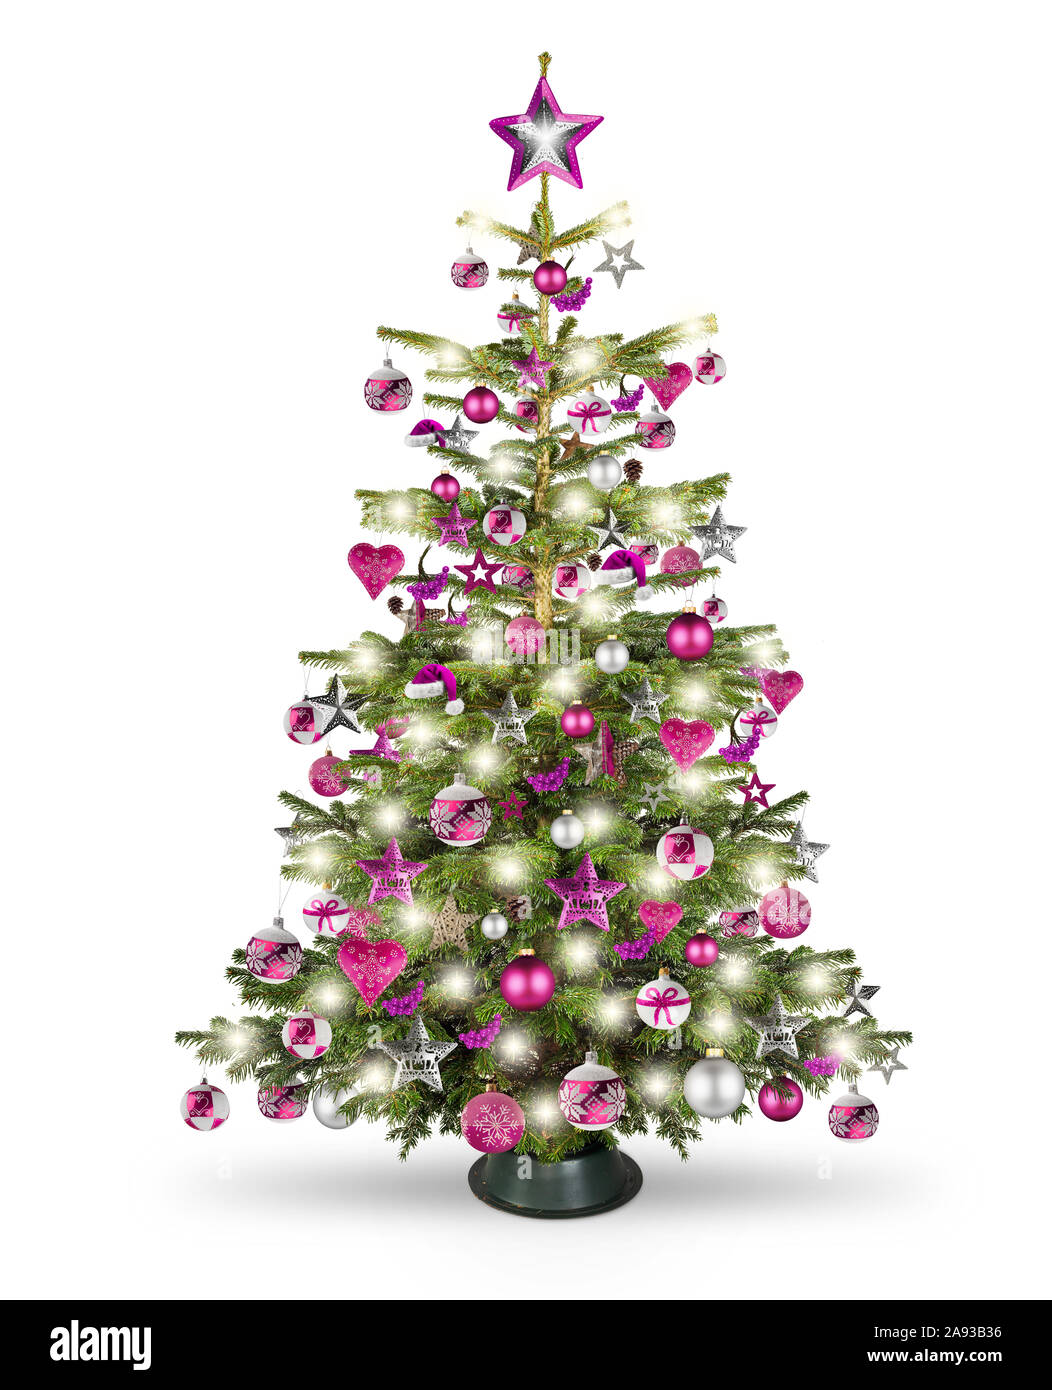 Real Natural Nordmann Xmas Christmas Tree With Pink Purple Red Silver And Wooden Decoration Bauble Star Heart And Bright Led Lights Isolated On White Stock Photo Alamy